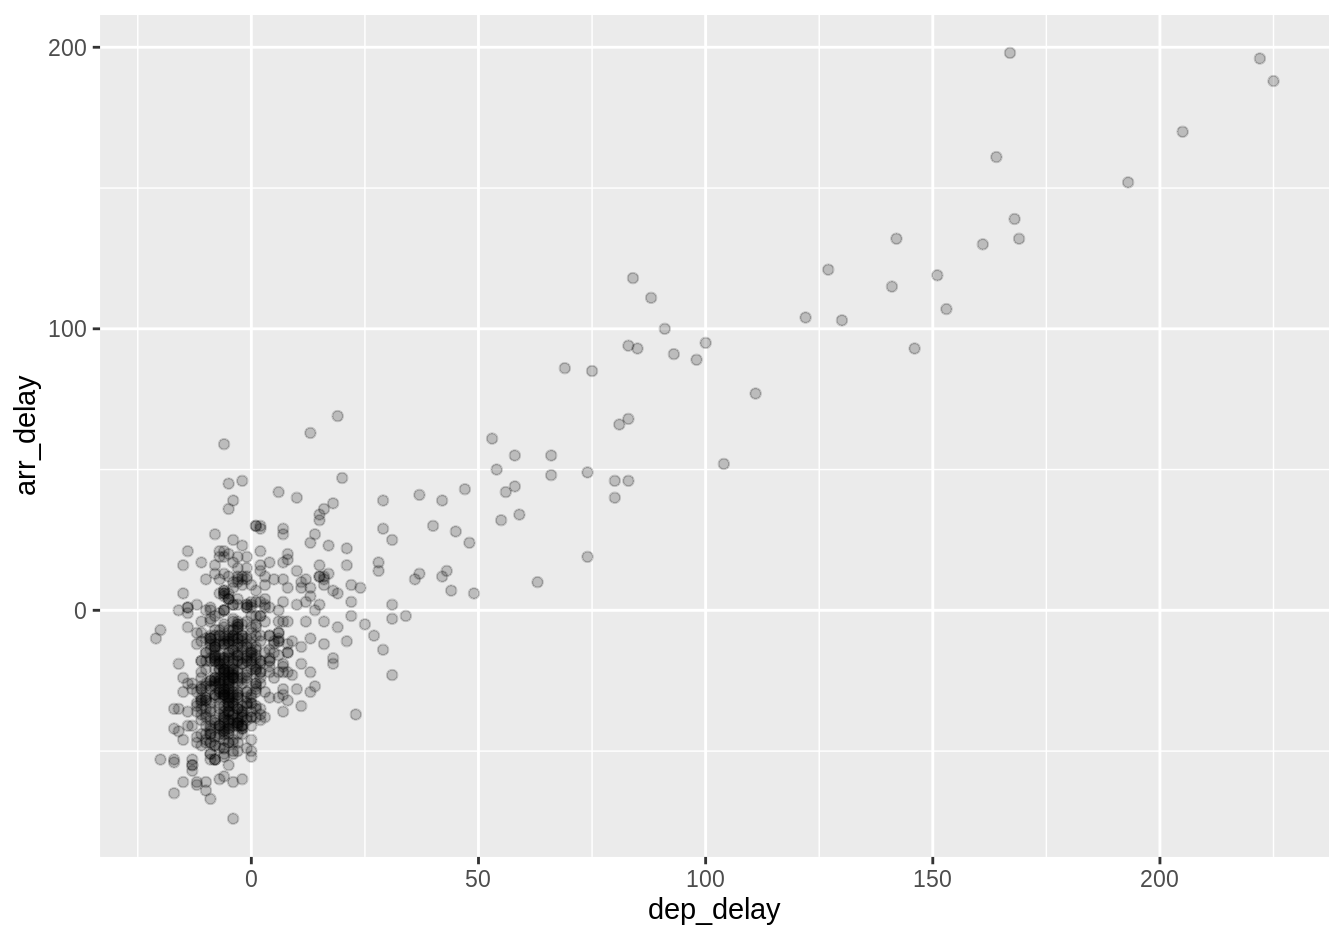 Arrival vs. departure delays scatterplot with alpha = 0.2.